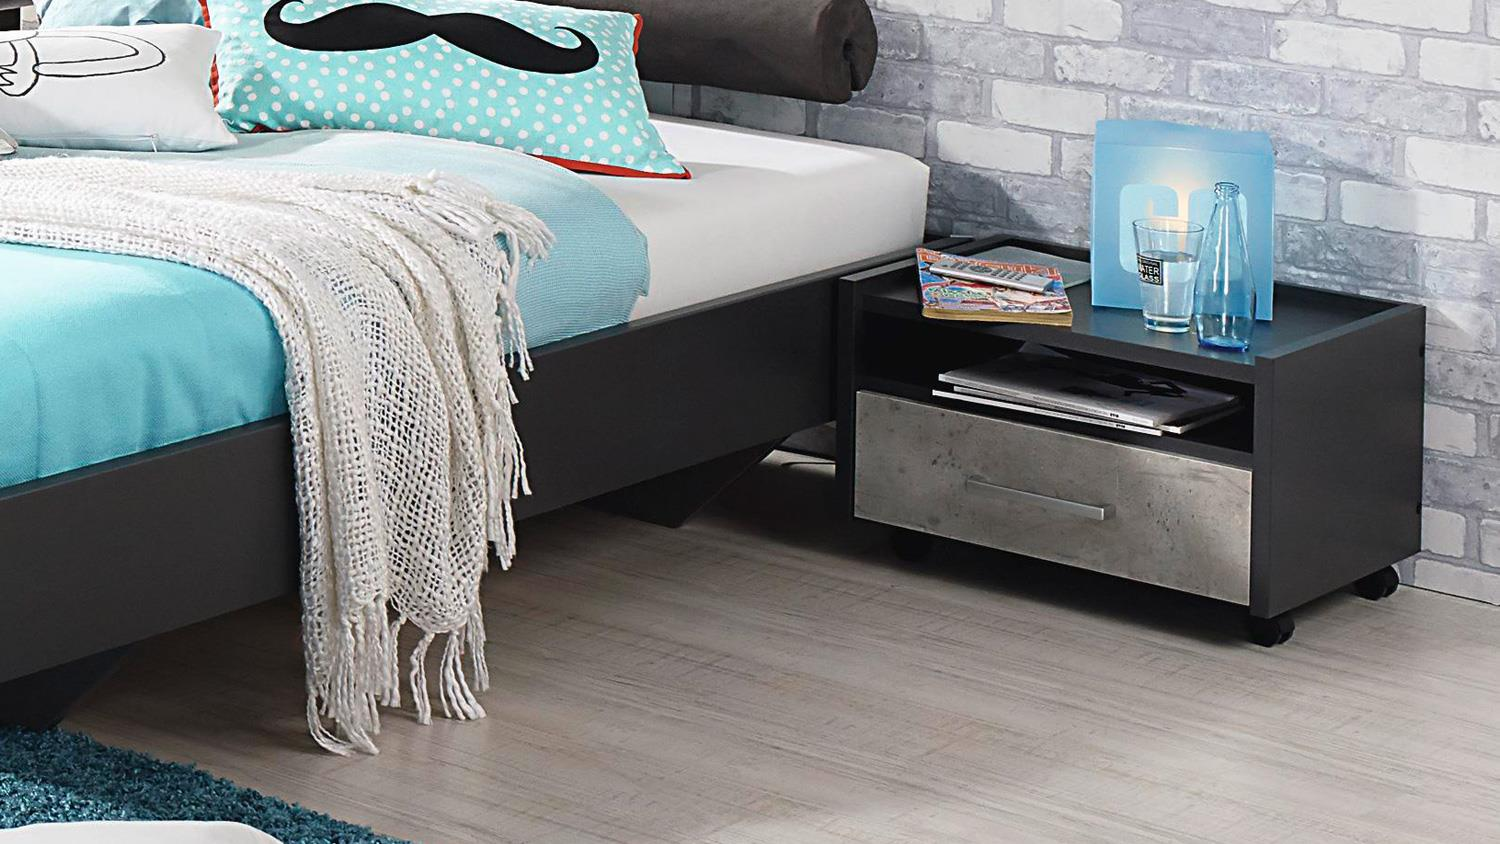 jugendzimmer set 2 mailo bett schrank nako in grau metallic und beton. Black Bedroom Furniture Sets. Home Design Ideas